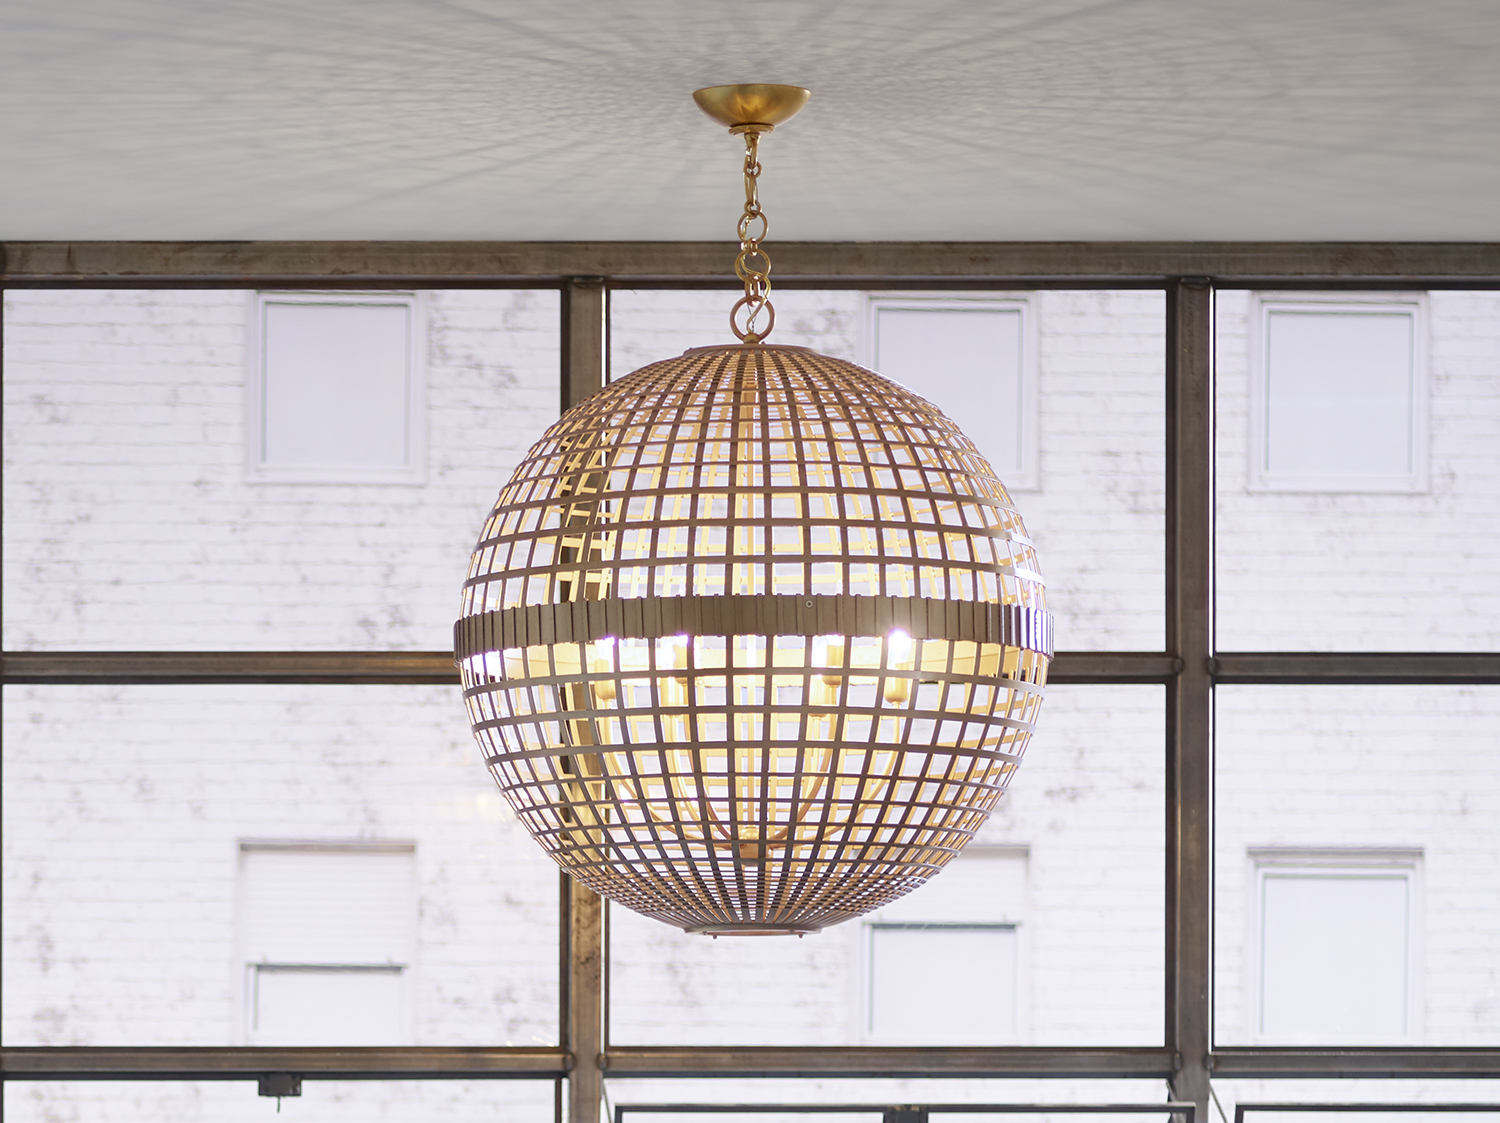 An open, airy light fixture with repeating geometric lines provides a calming contrast in a pattern-rich room.